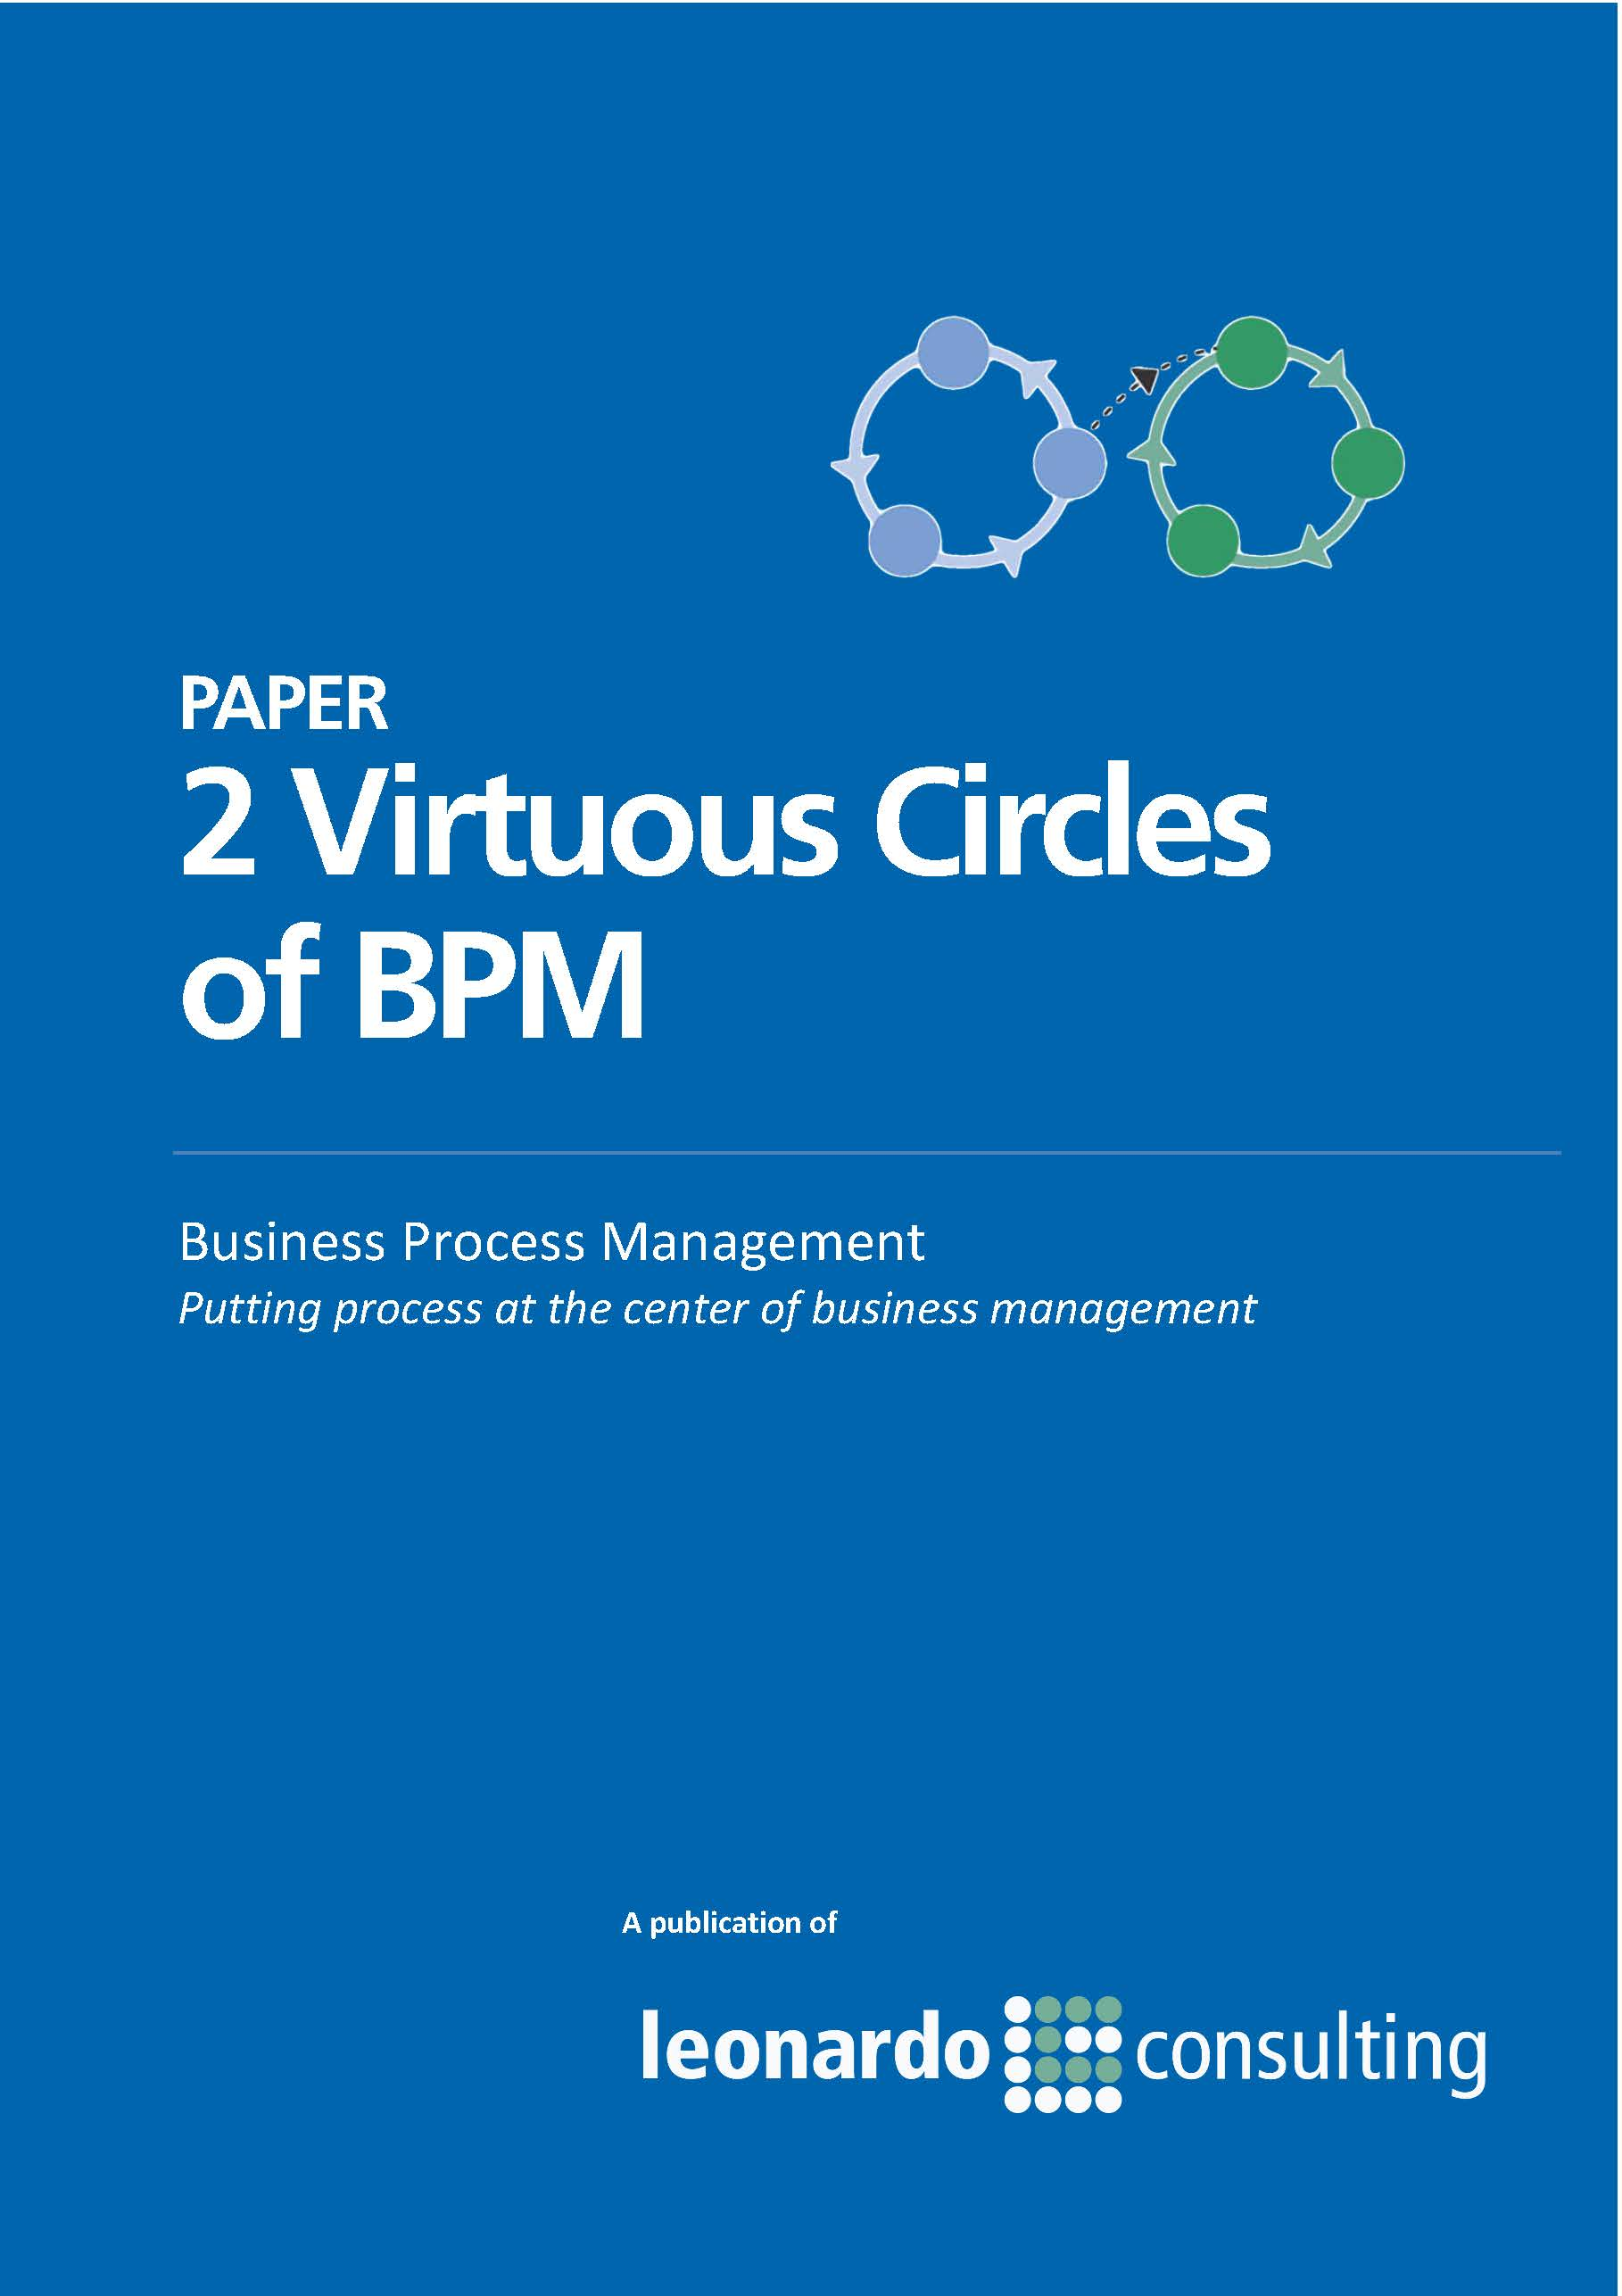 2 Virtuous Circles of BPM